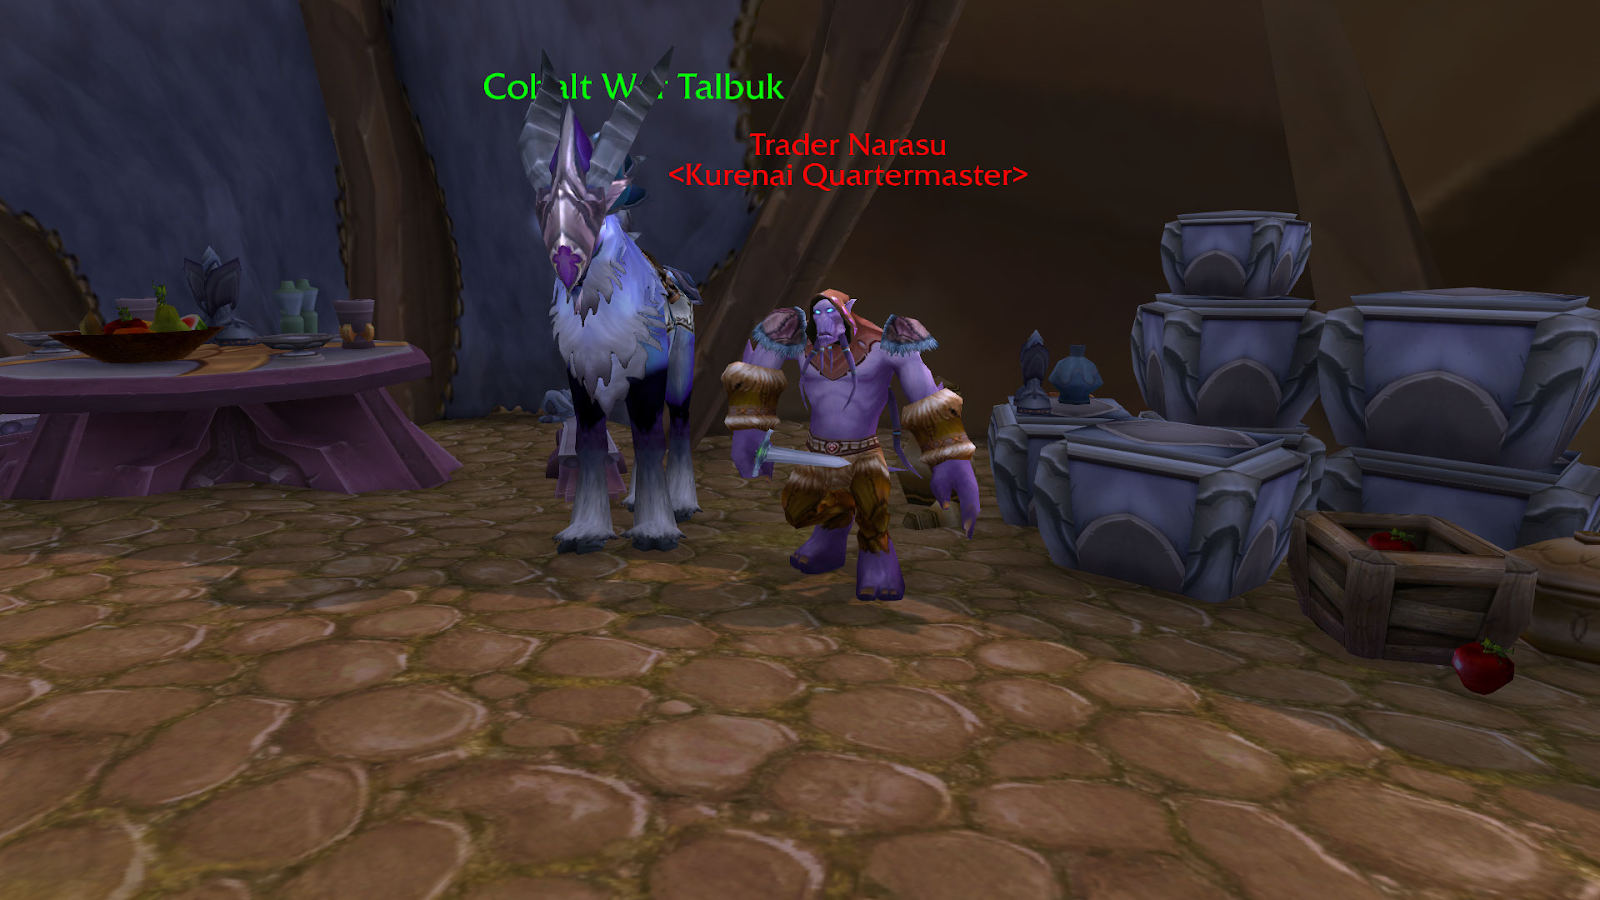 Alliance vendor who sells the Cobalt War Talbuk at Exalted